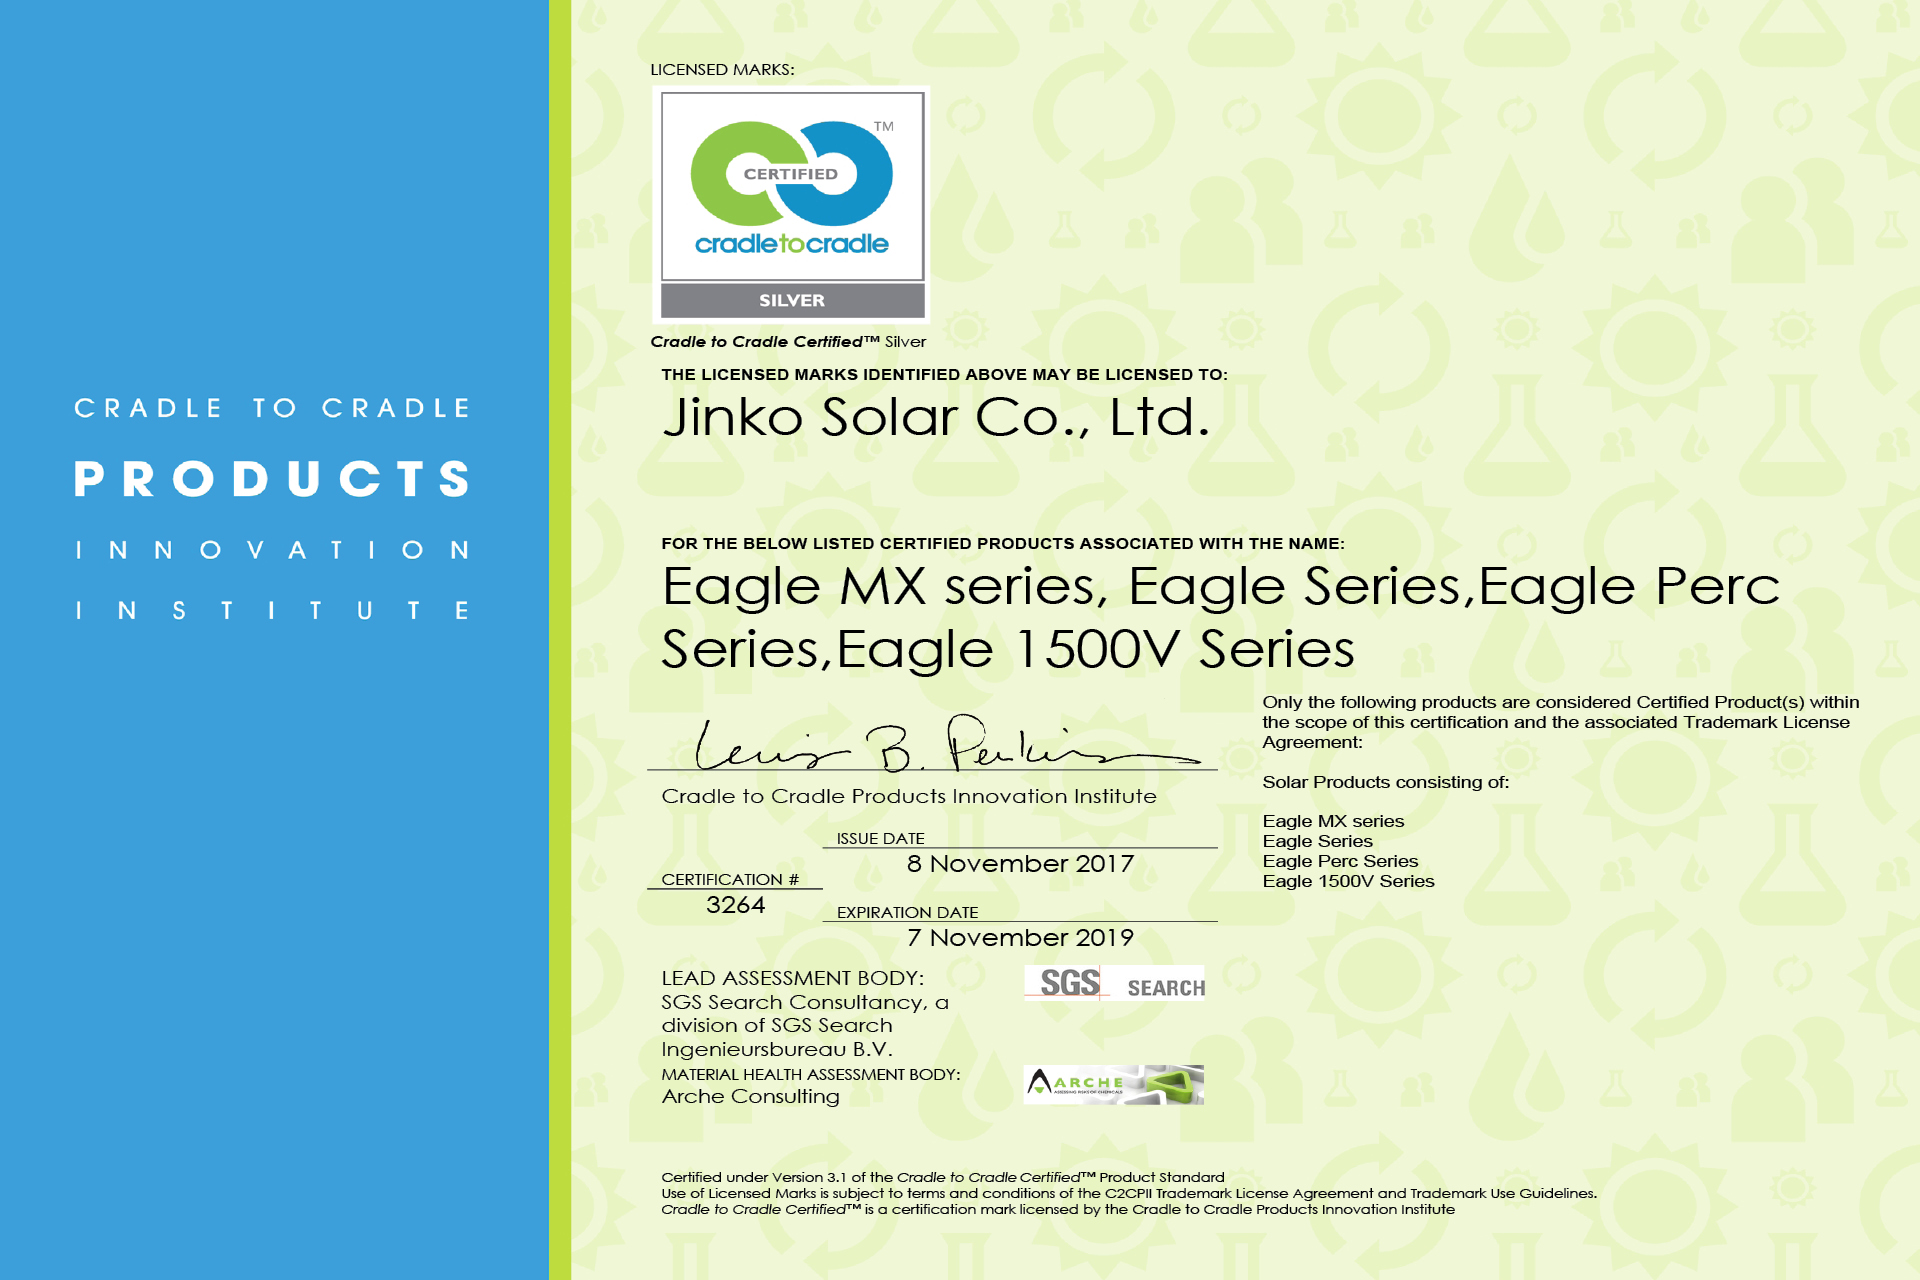 Sgs Awards Jinkosolar With First C2c Certificate In China Building